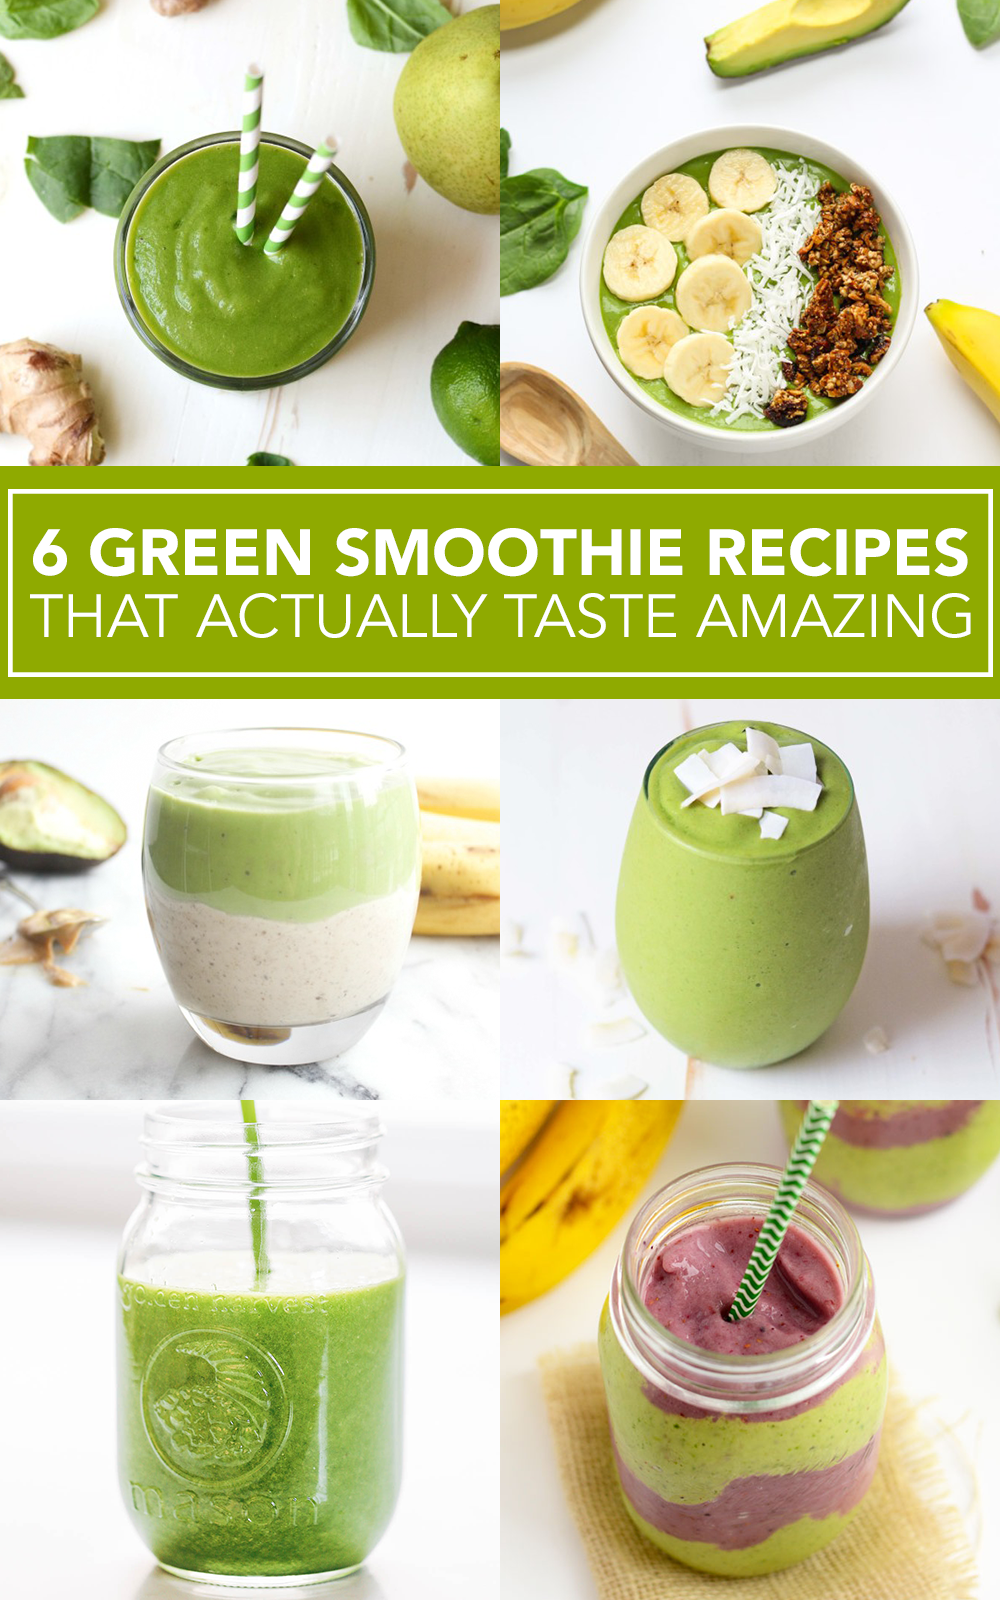 6 Green Smoothie Recipes That Actually Taste Amazing